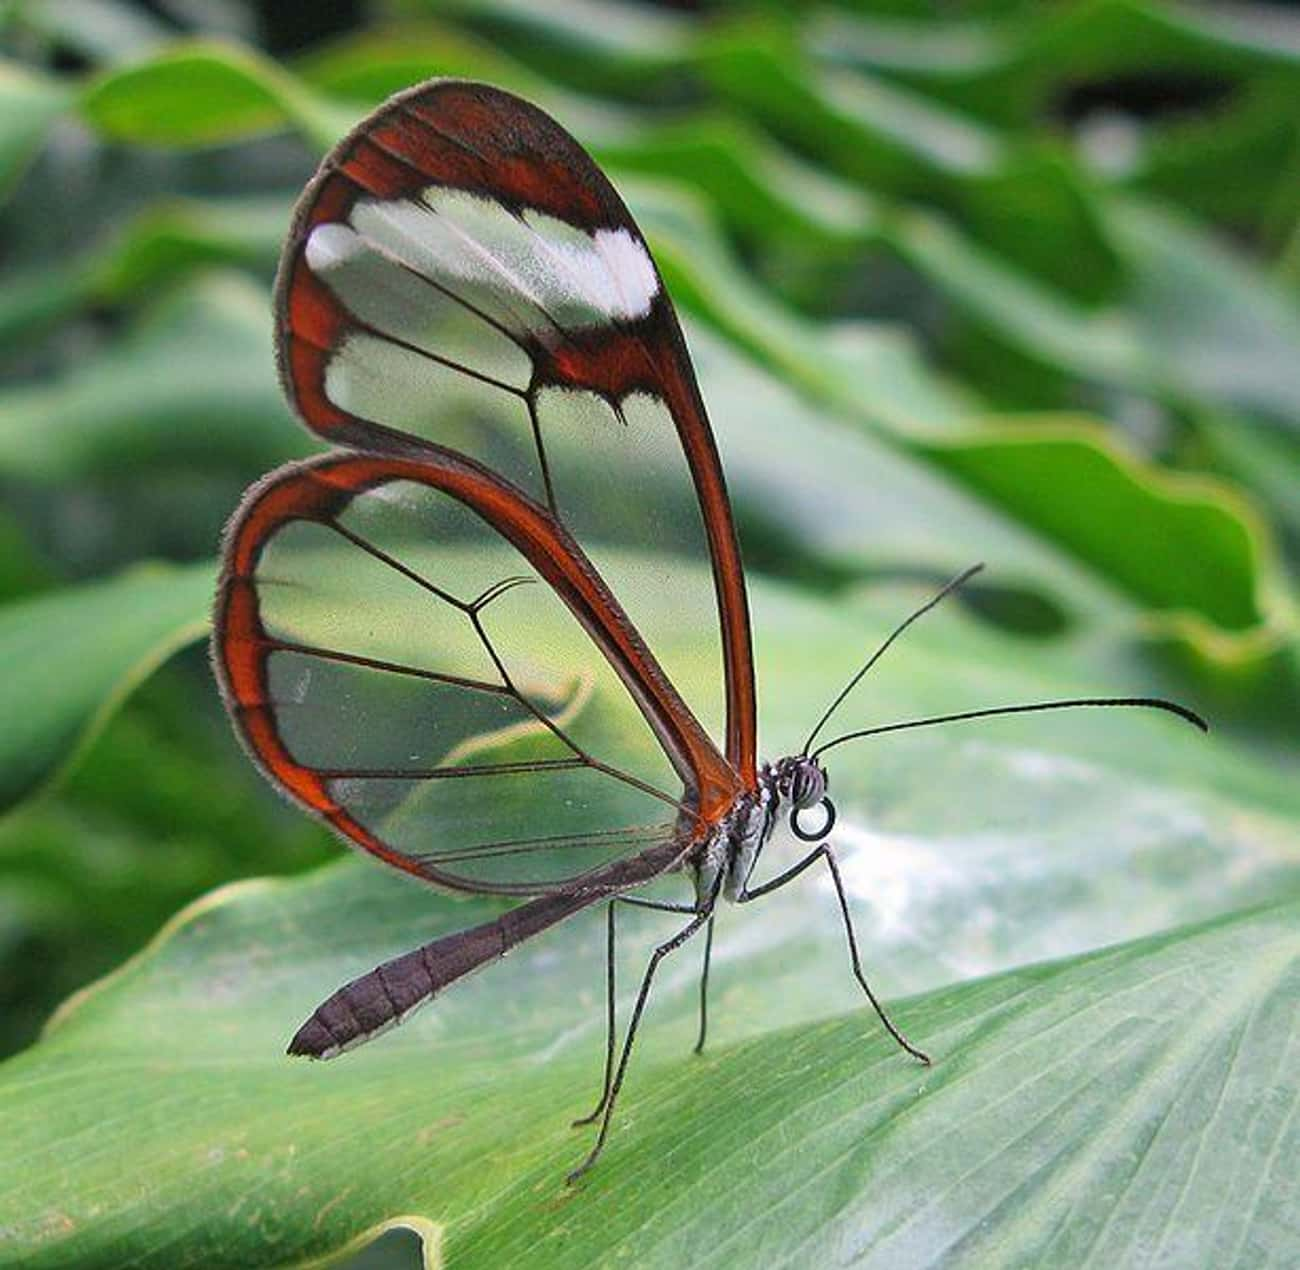 Costa Rican Glasswing Butterfl is listed (or ranked) 3 on the list 22 Colorful Animals Who Look Photoshopped